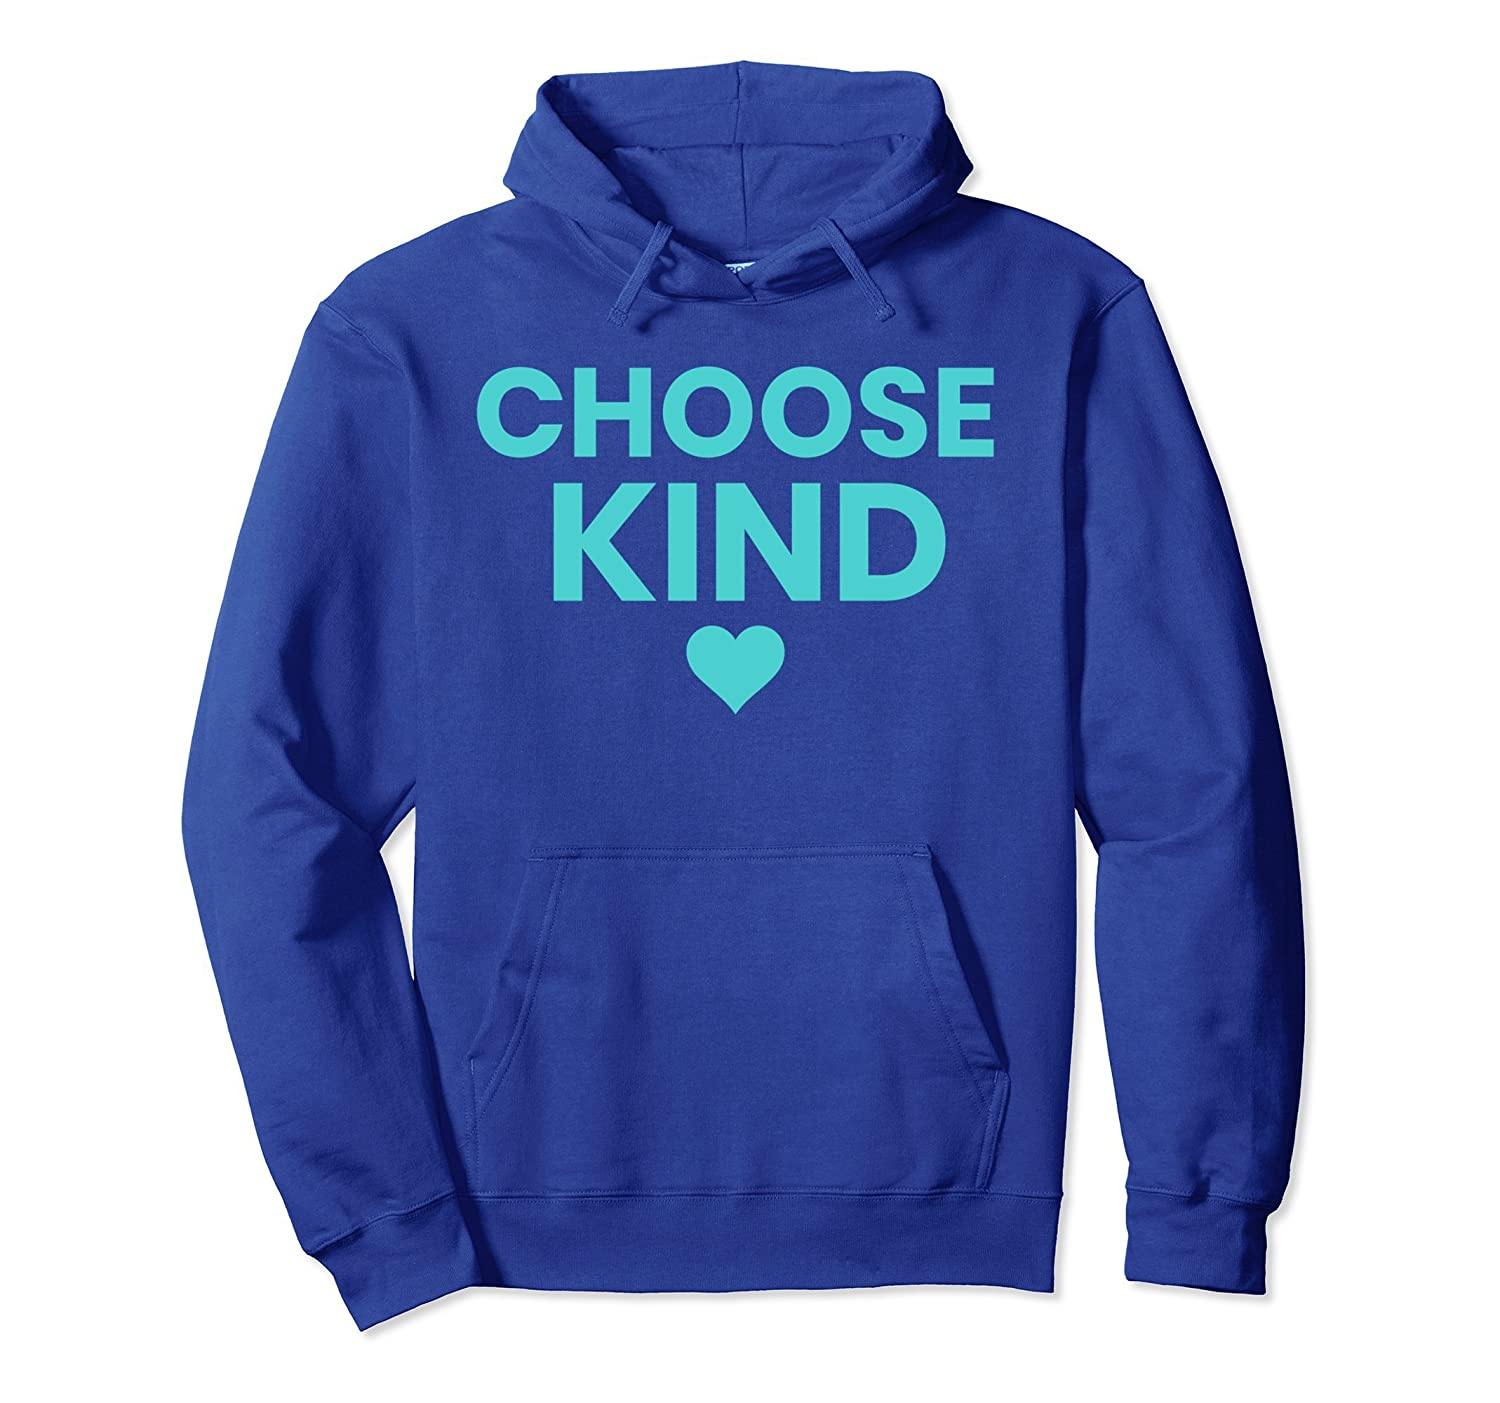 Choose kind anti bullying simple teal color text hoodie-alottee gift